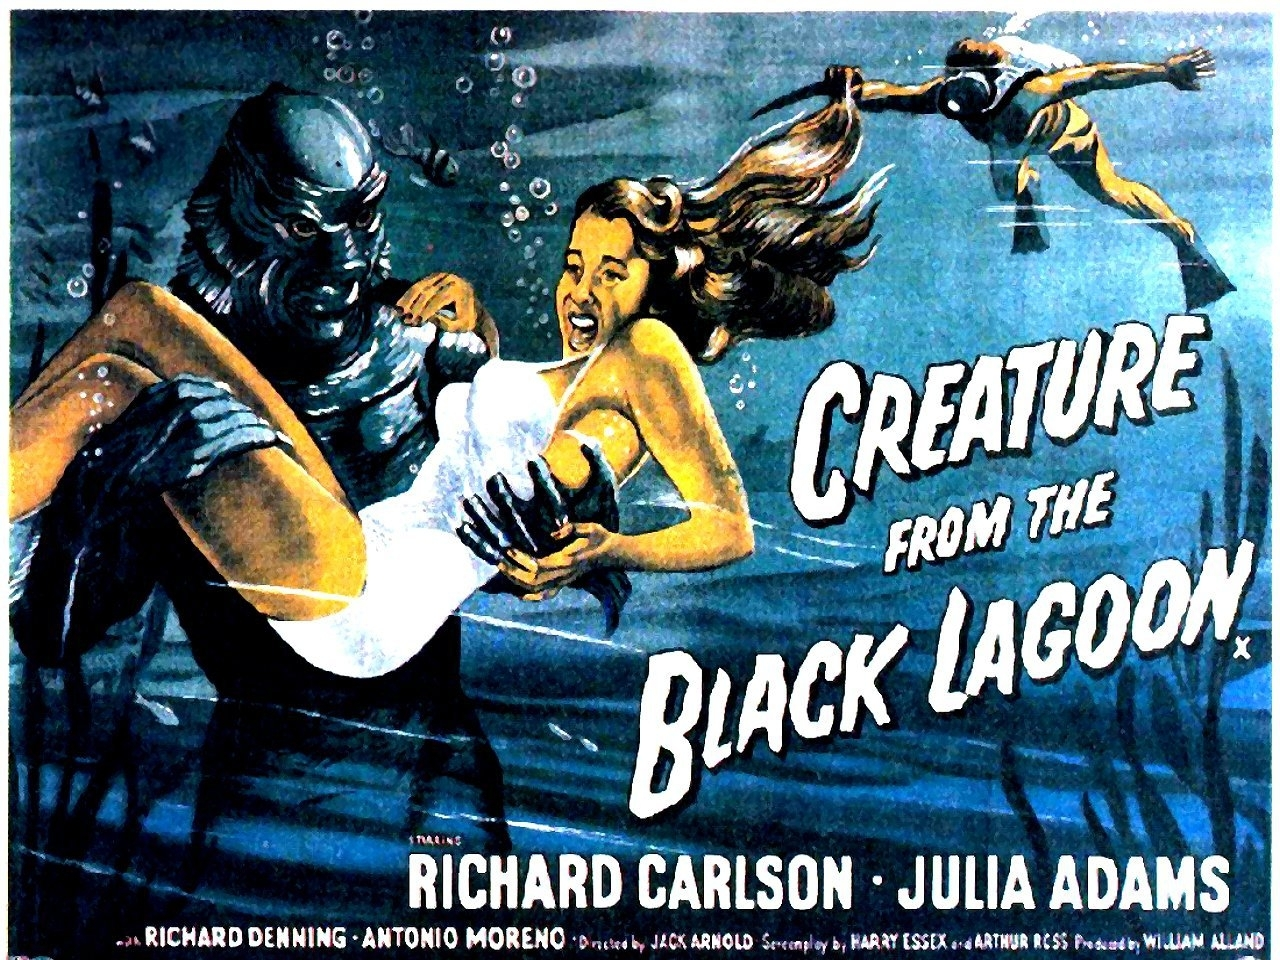 Creature From The Black Lagoon Poster Universal Monsters